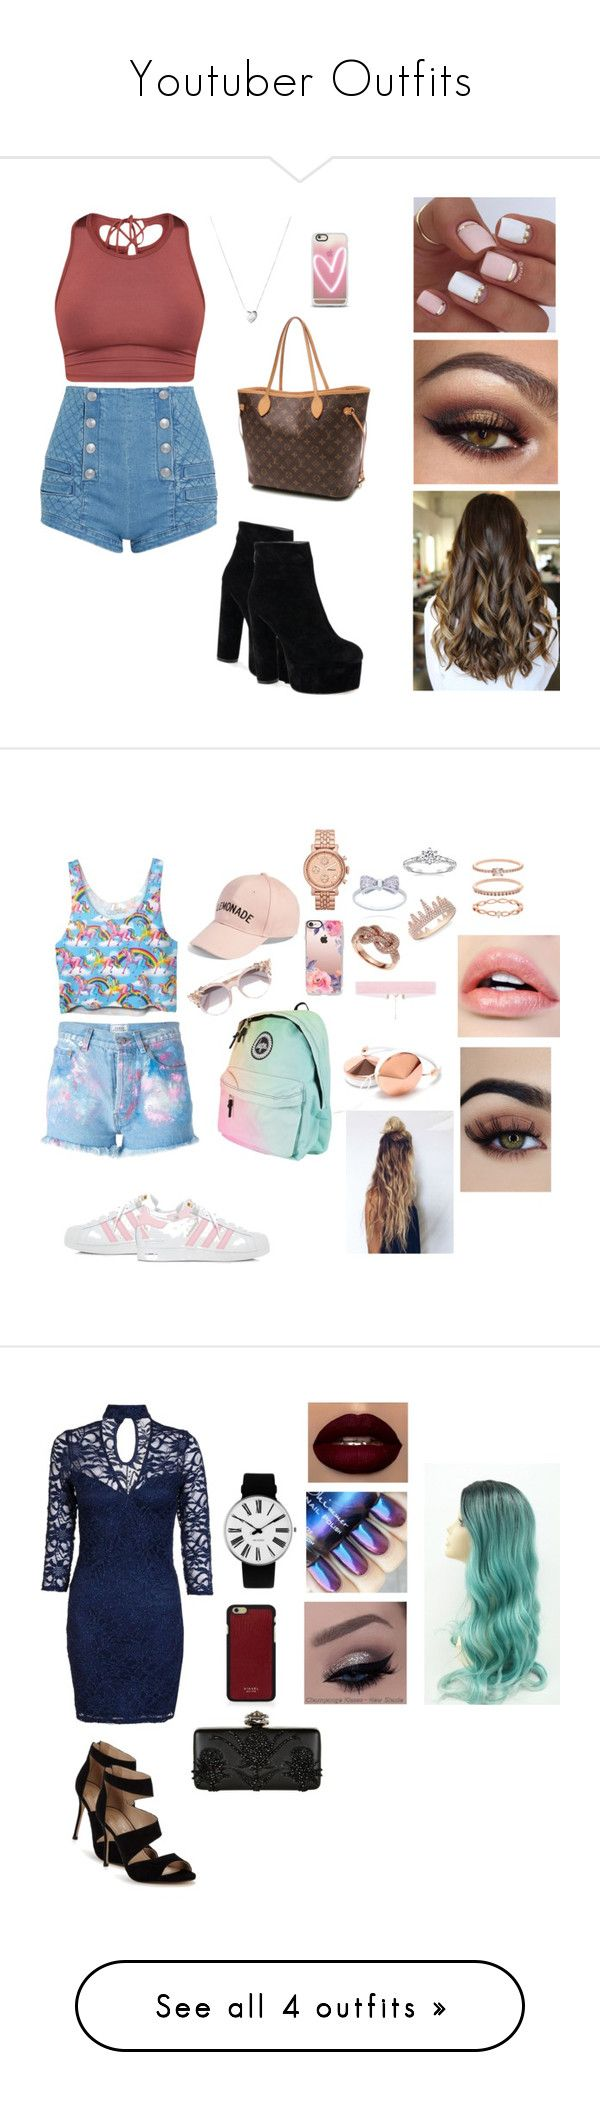 """""""Youtuber Outfits"""" by brauerisabelle on Polyvore featuring Pierre Balmain, Louis Vuitton, Links of London, Casetify, Forte Couture, adidas, Jimmy Choo, Amici Accessories, FOSSIL and Effy Jewelry"""